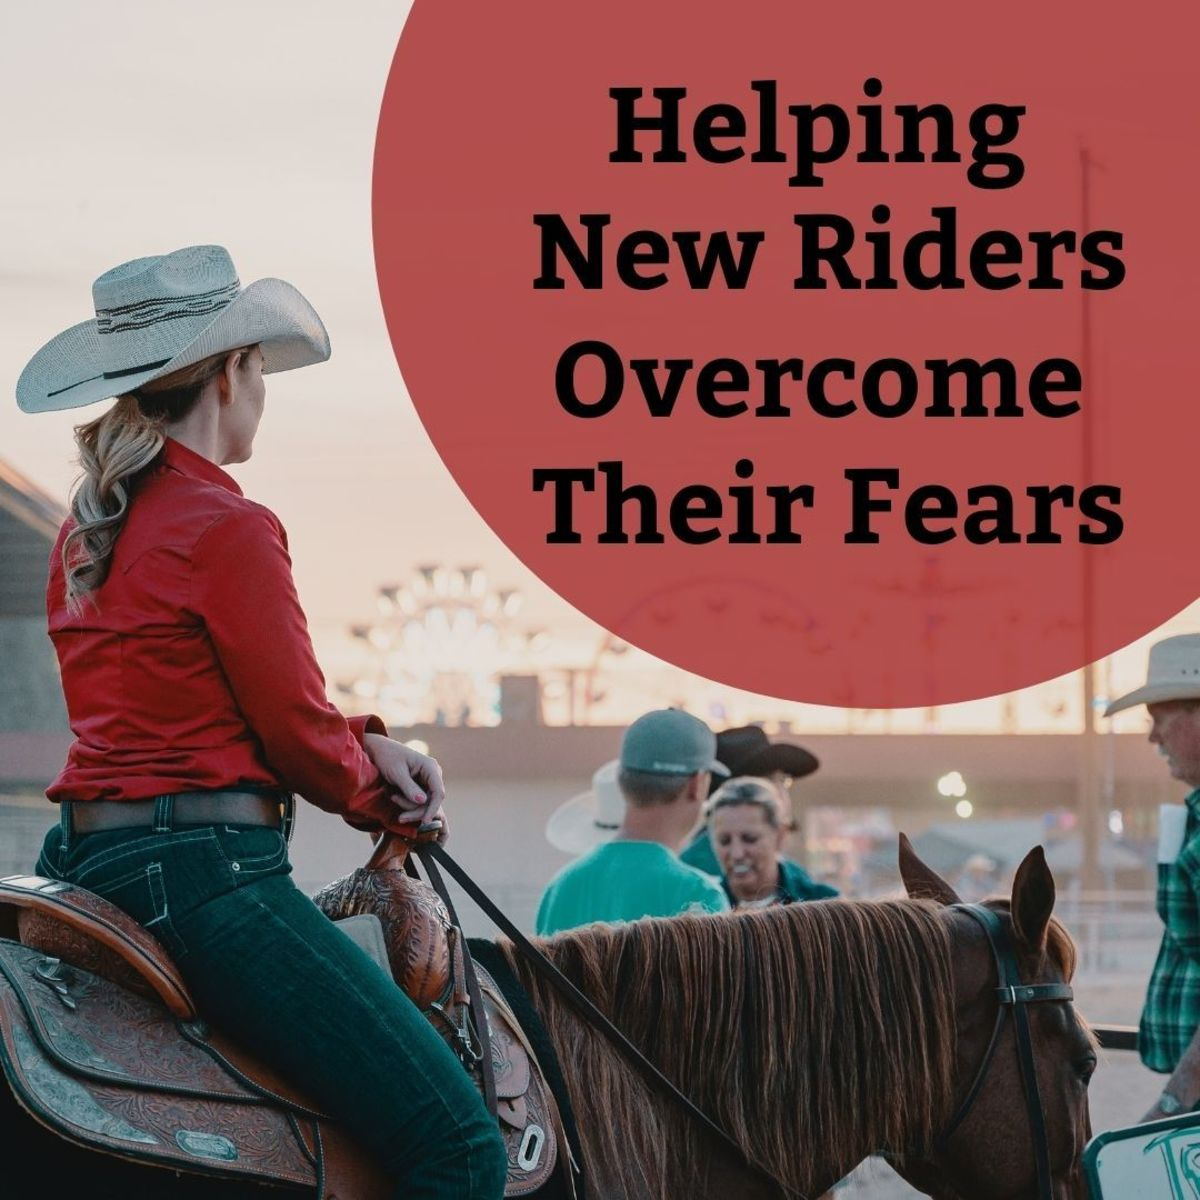 Useful advice for riding instructors on how to help new riders overcome their fears